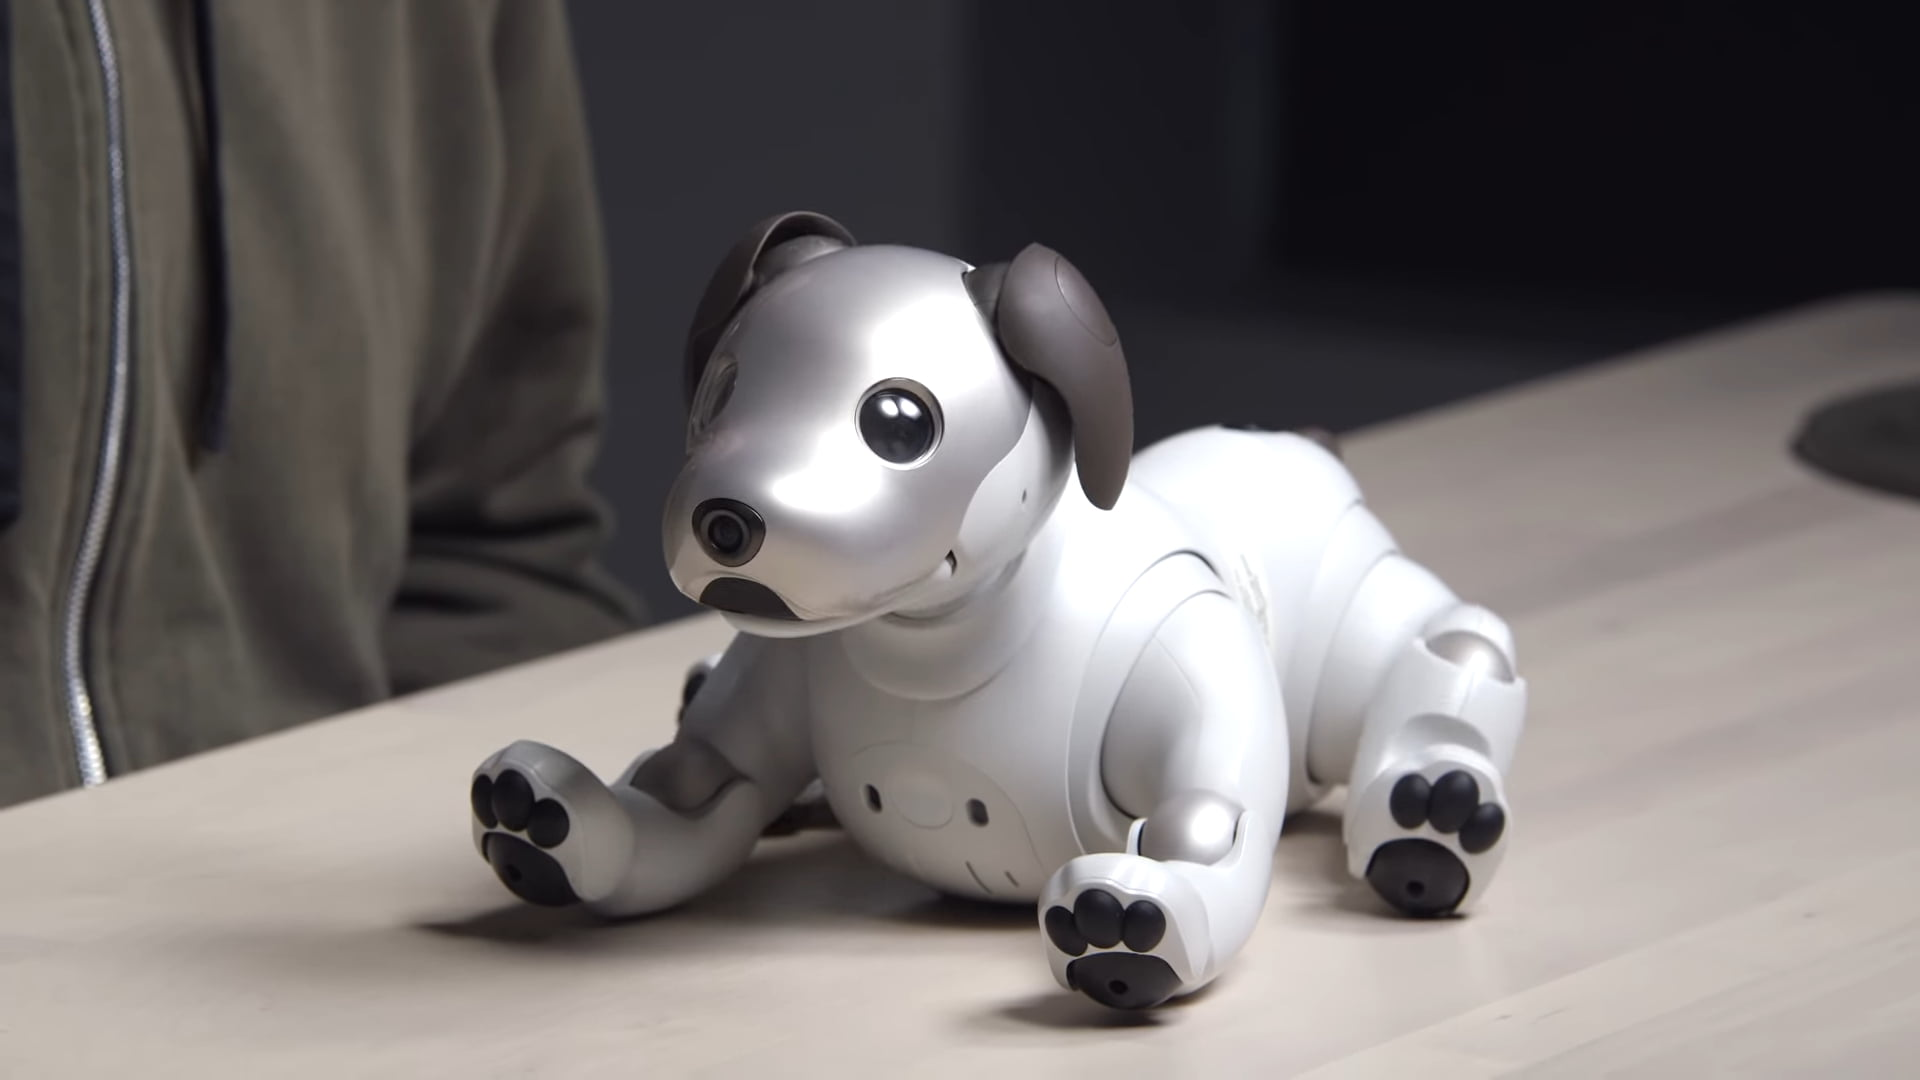 Sony's Aibo will not only make a cute but a diligent robopup pet